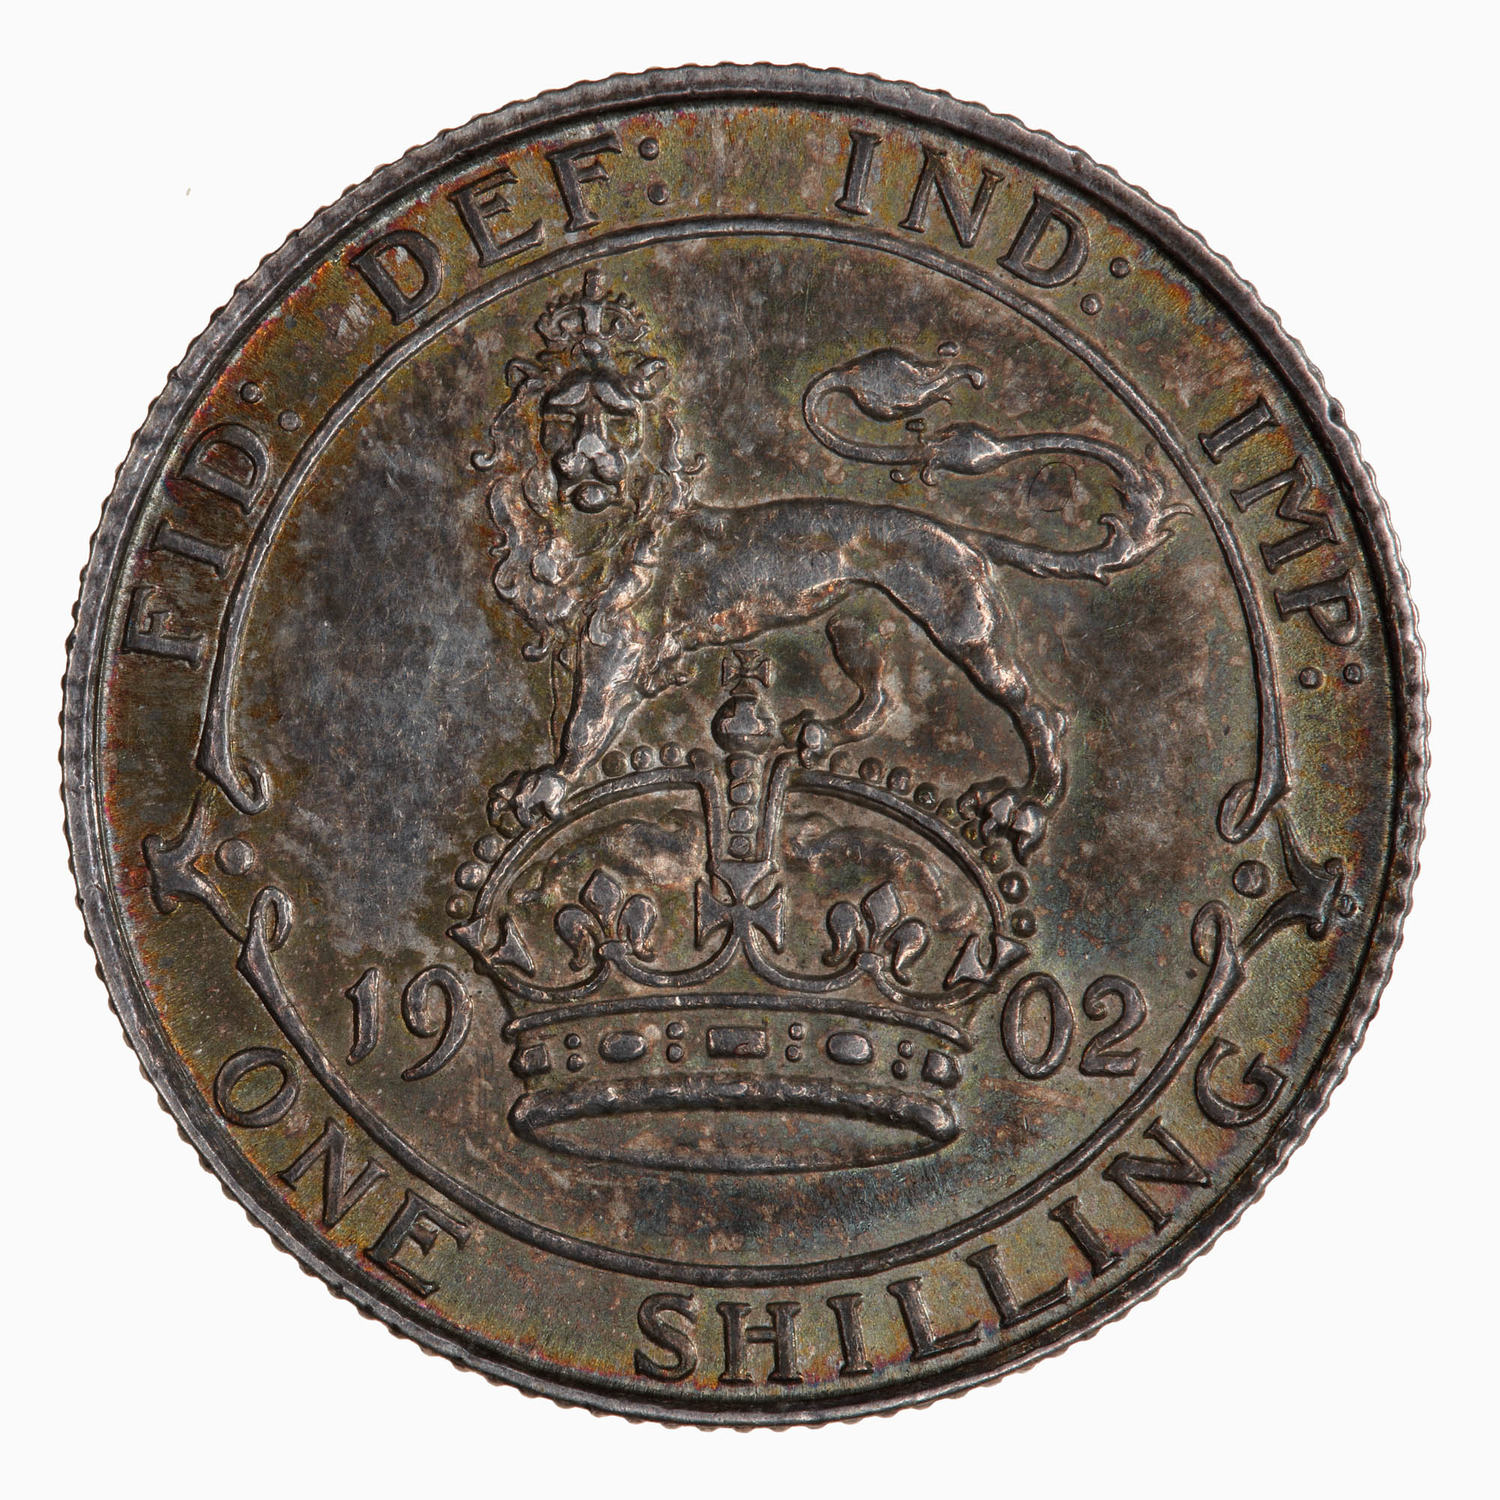 Shilling: Photo Coin - Shilling, Edward VII, England, Great Britain, 1902